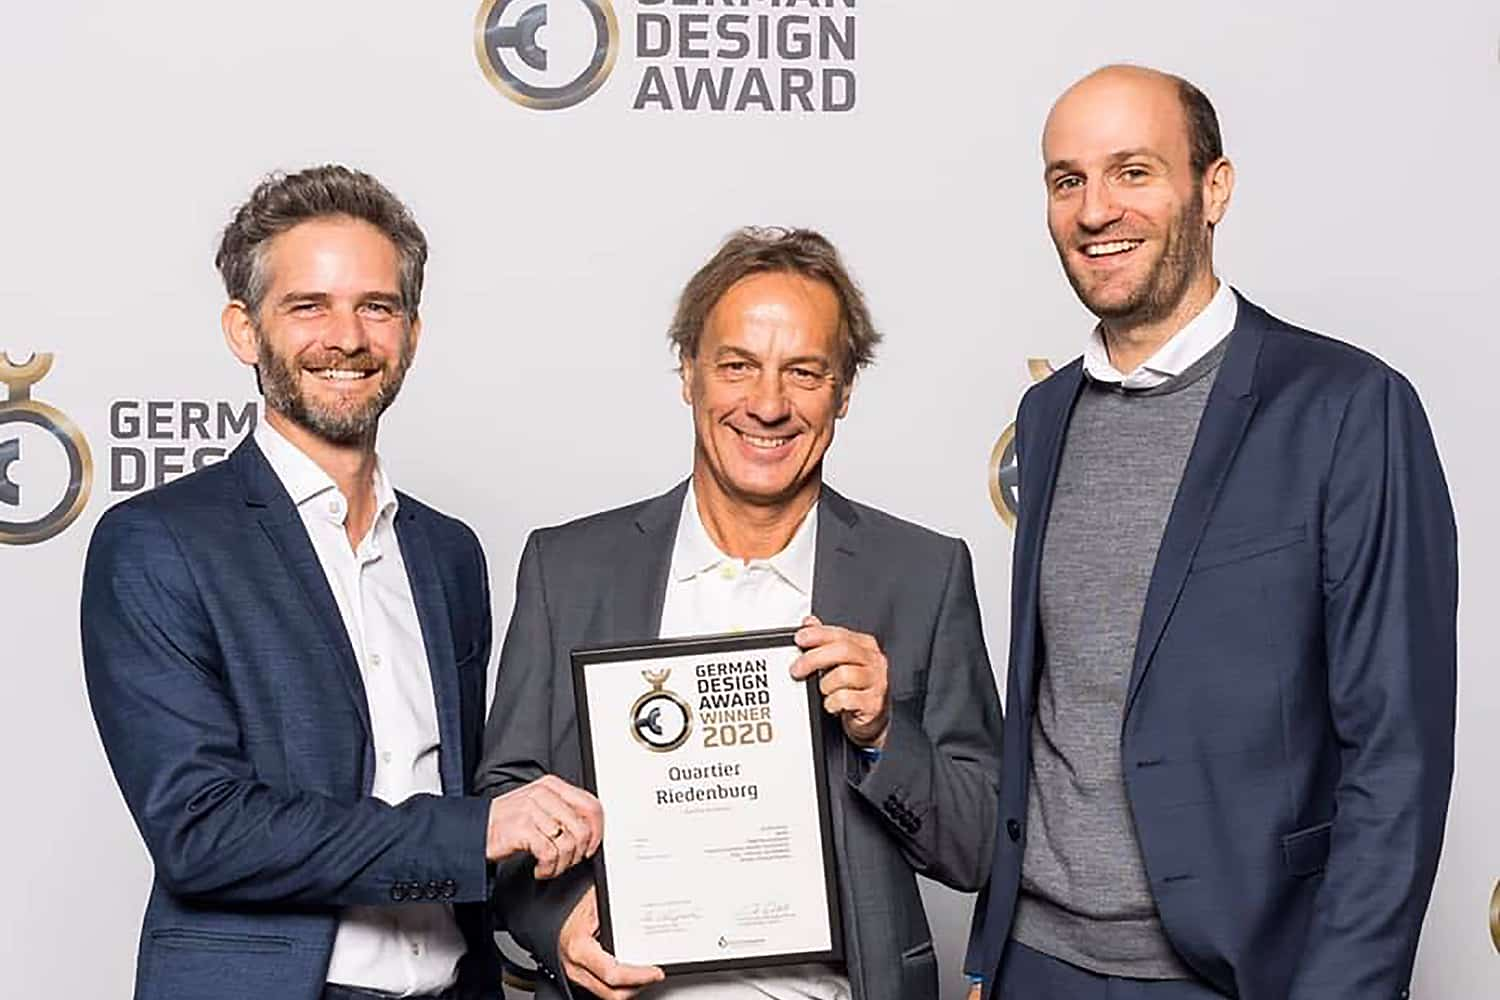 Verleihung, German Design Award 2020 | Frankfurt